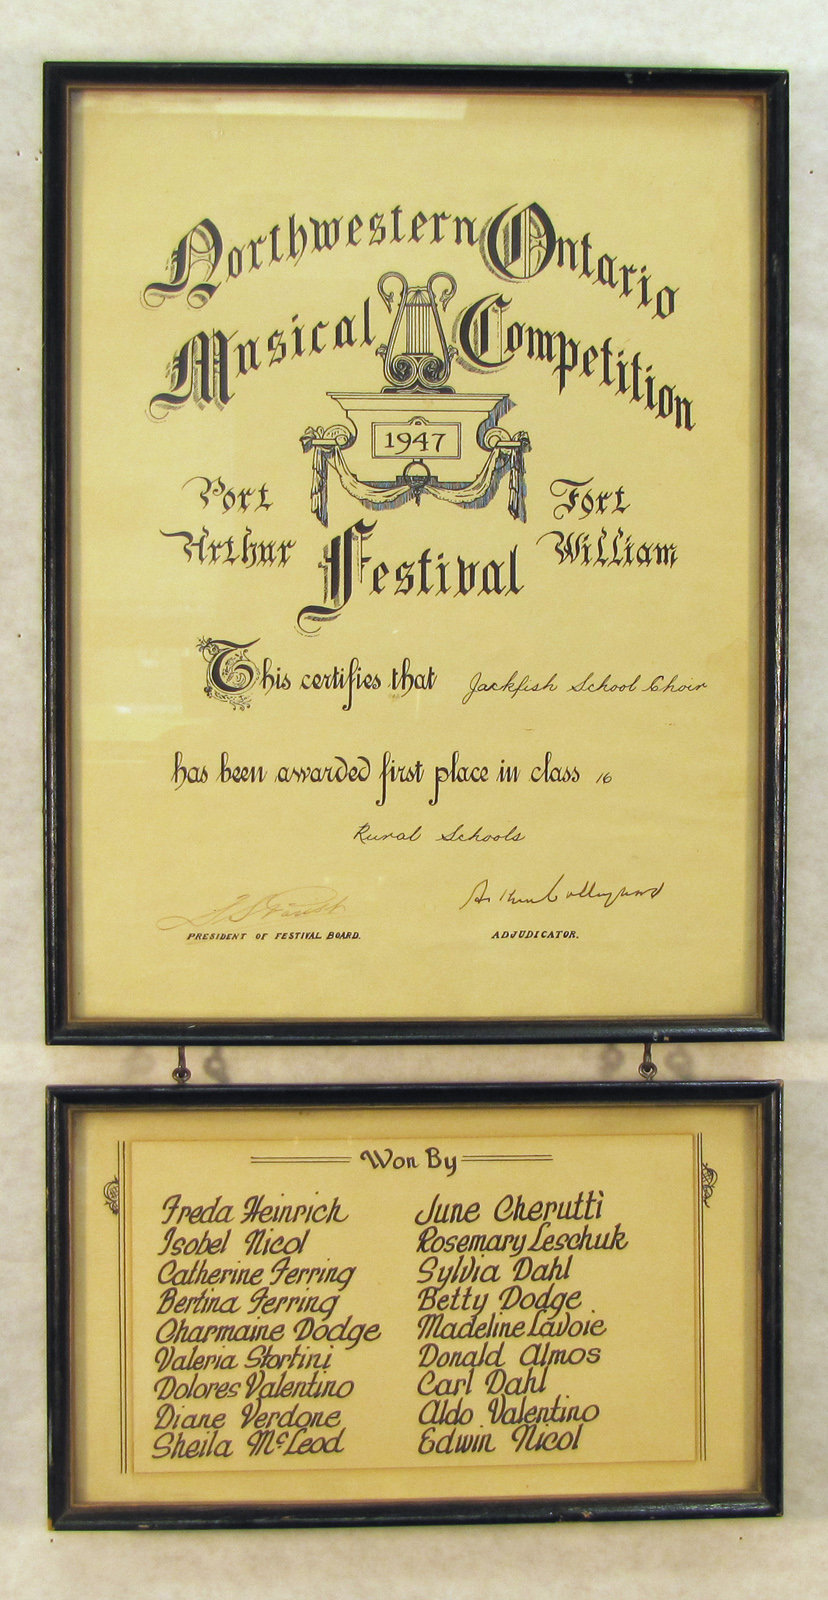 1947 Award Certificate to Jackfish School Choir for Musical Competition